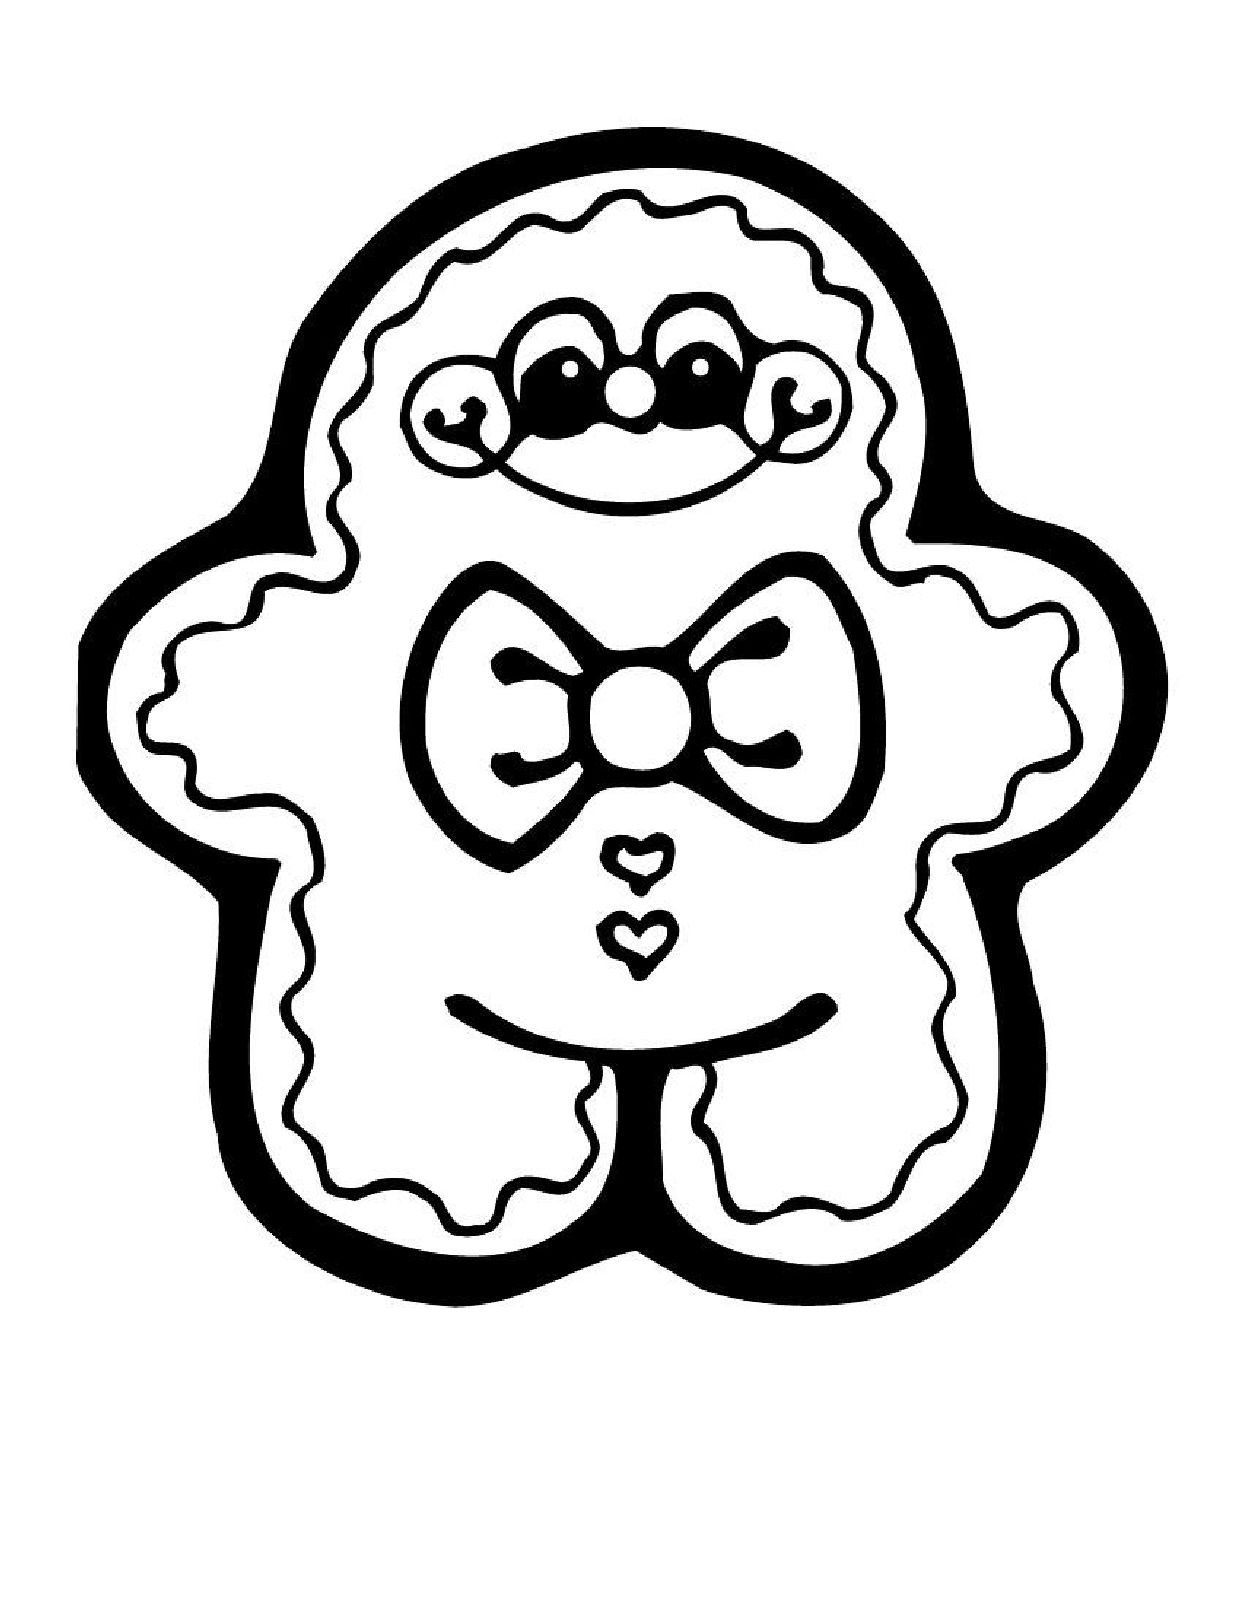 Christmas Coloring Pages Printable Winter Download Free For Gingerbread Man